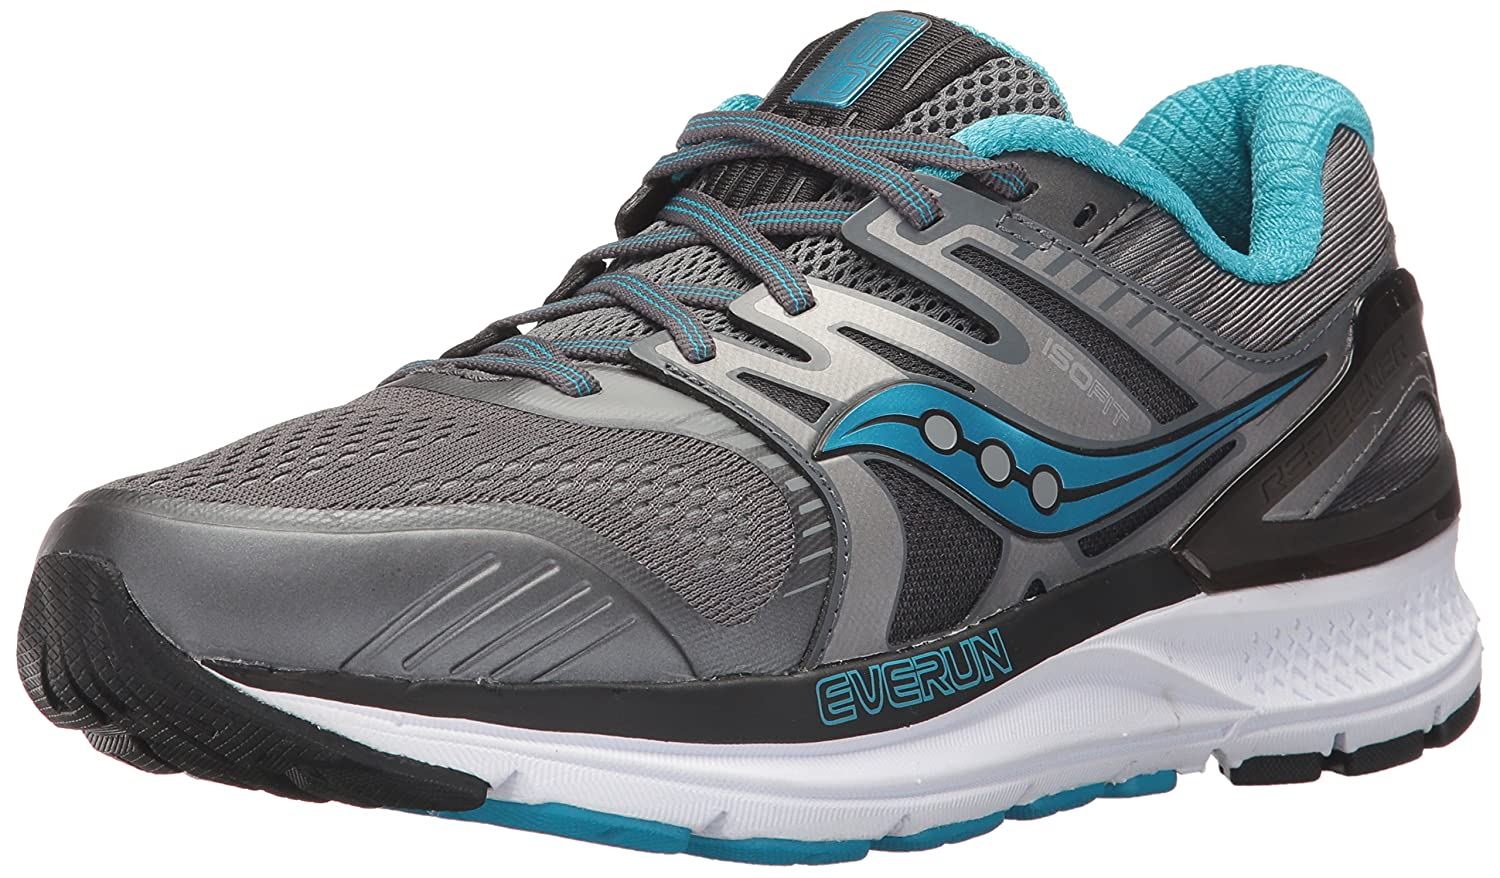 Saucony Women's Redeemer Iso 2 Running Shoe B01N6JJKLU 8.5 W US|Grey Blue